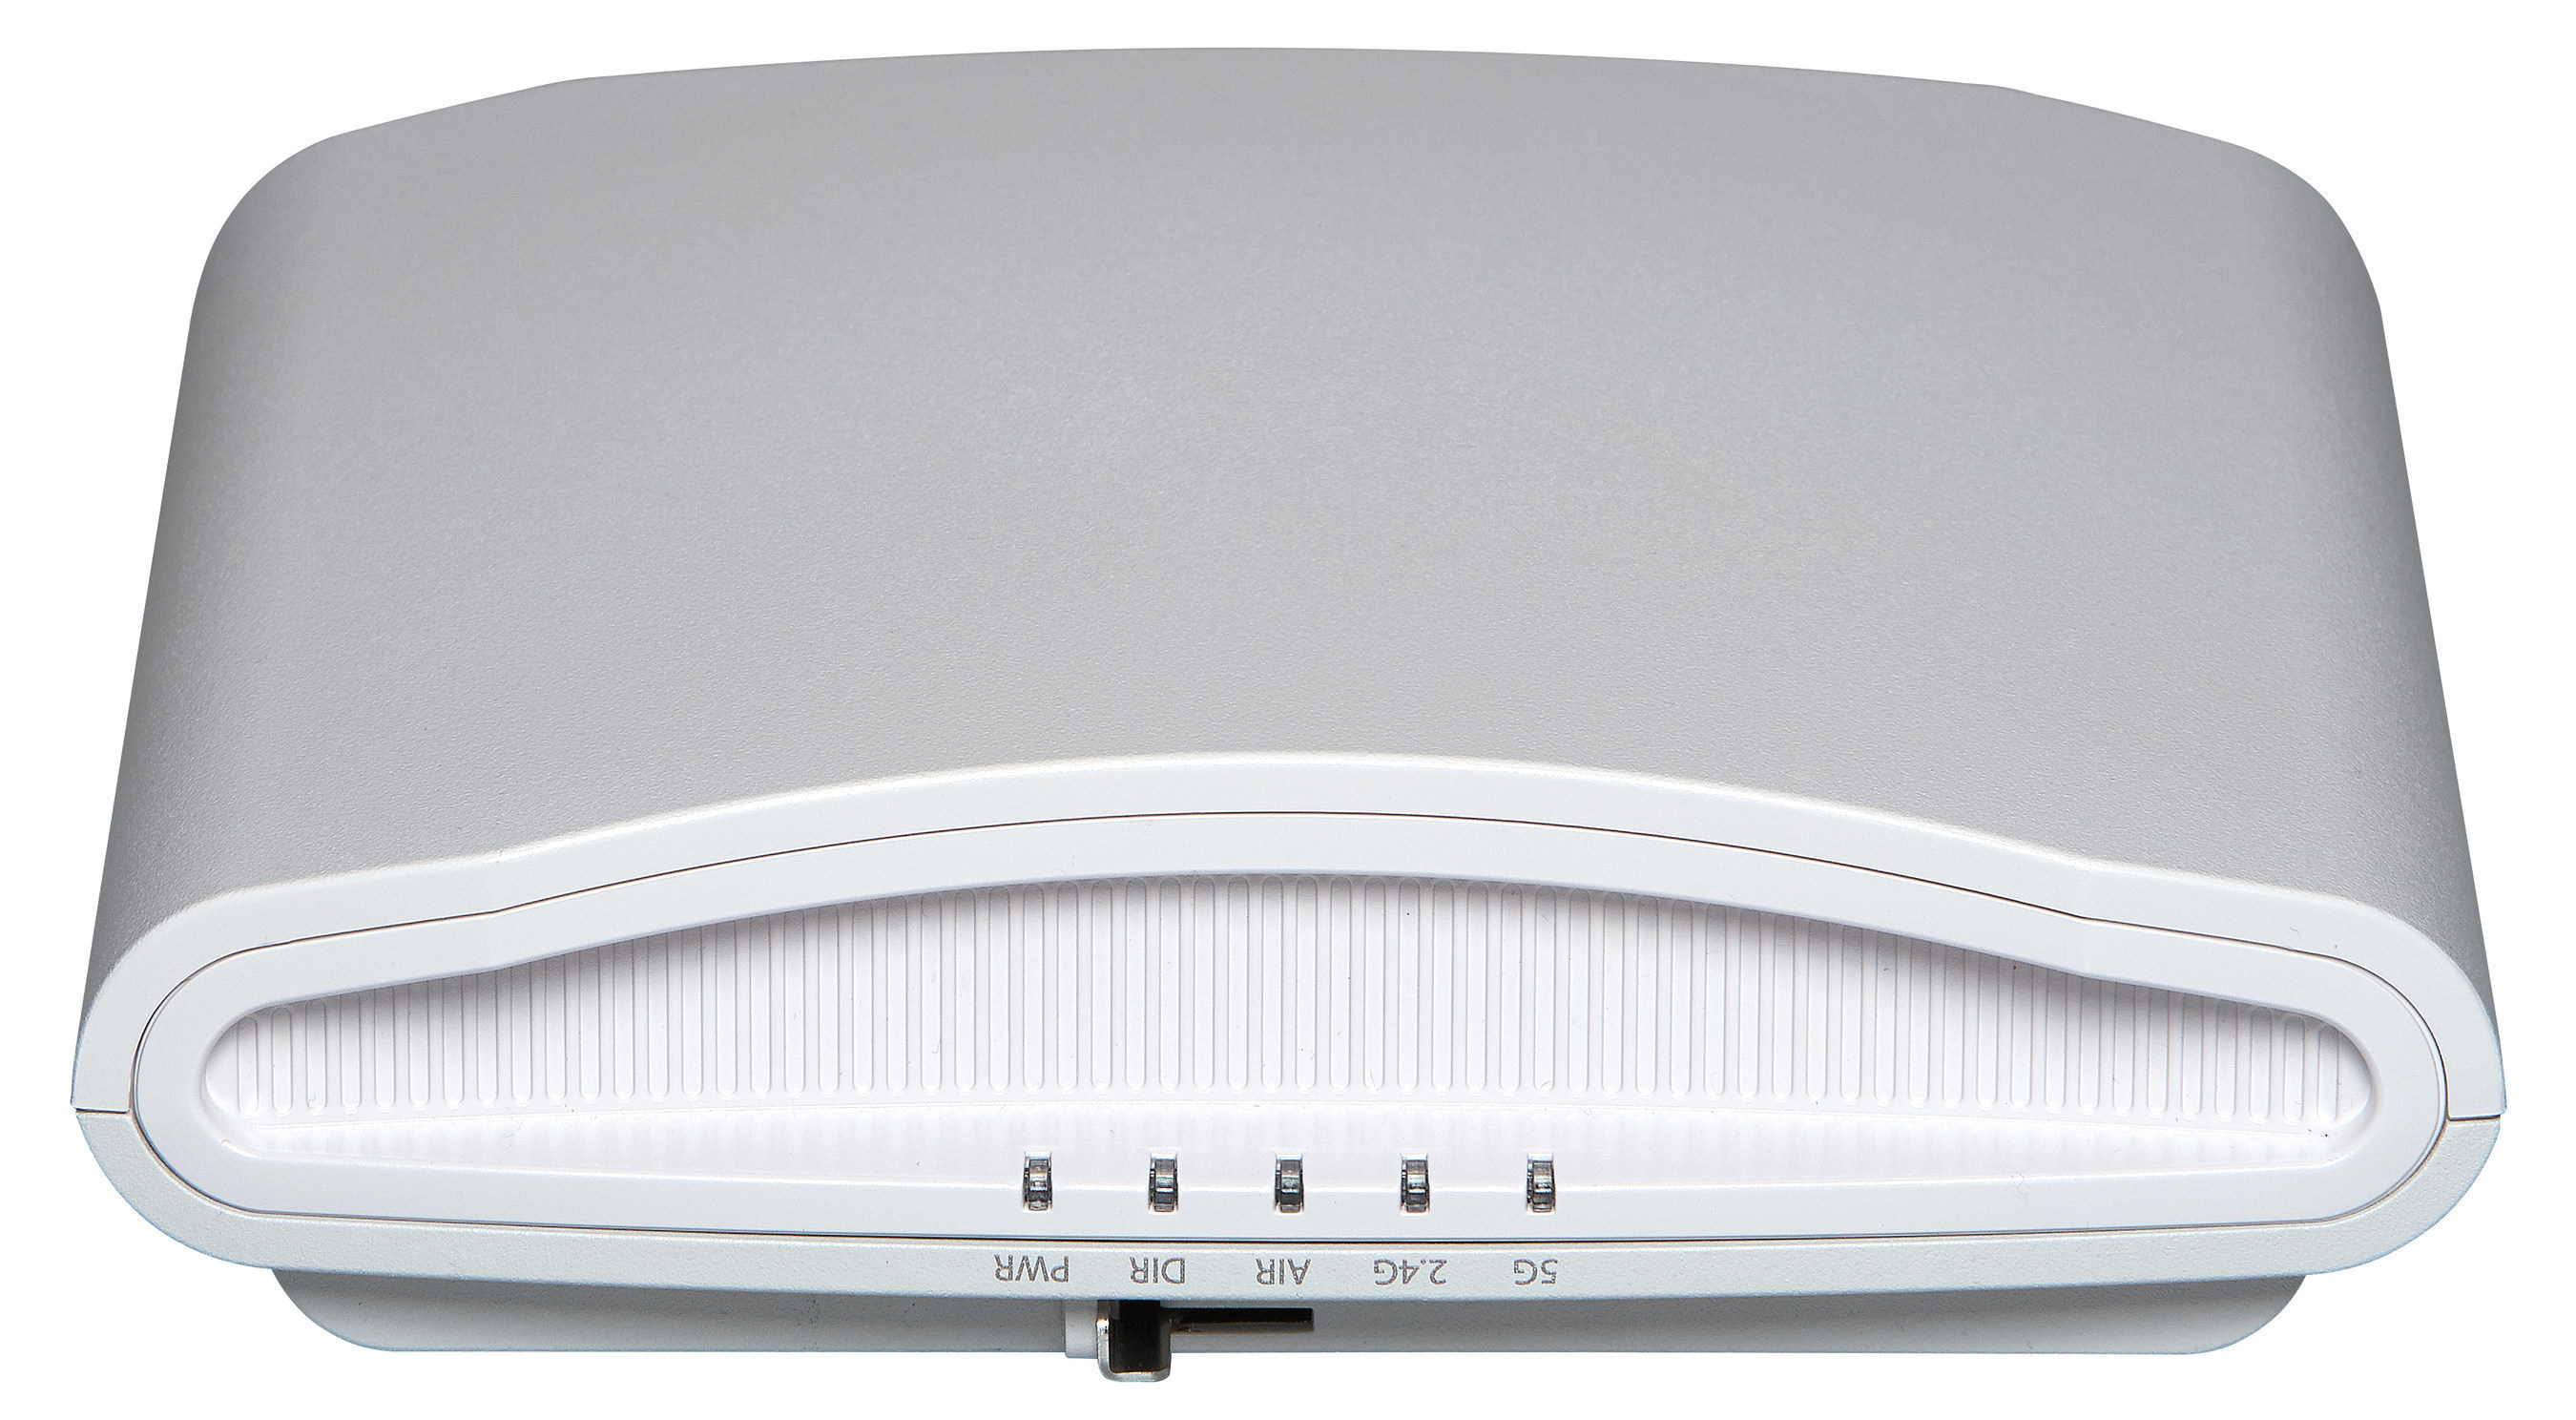 Ruckus Redefines High-Speed, High Capacity Wi-Fi with Industry's First 802.11ac Wave 2 Access Point